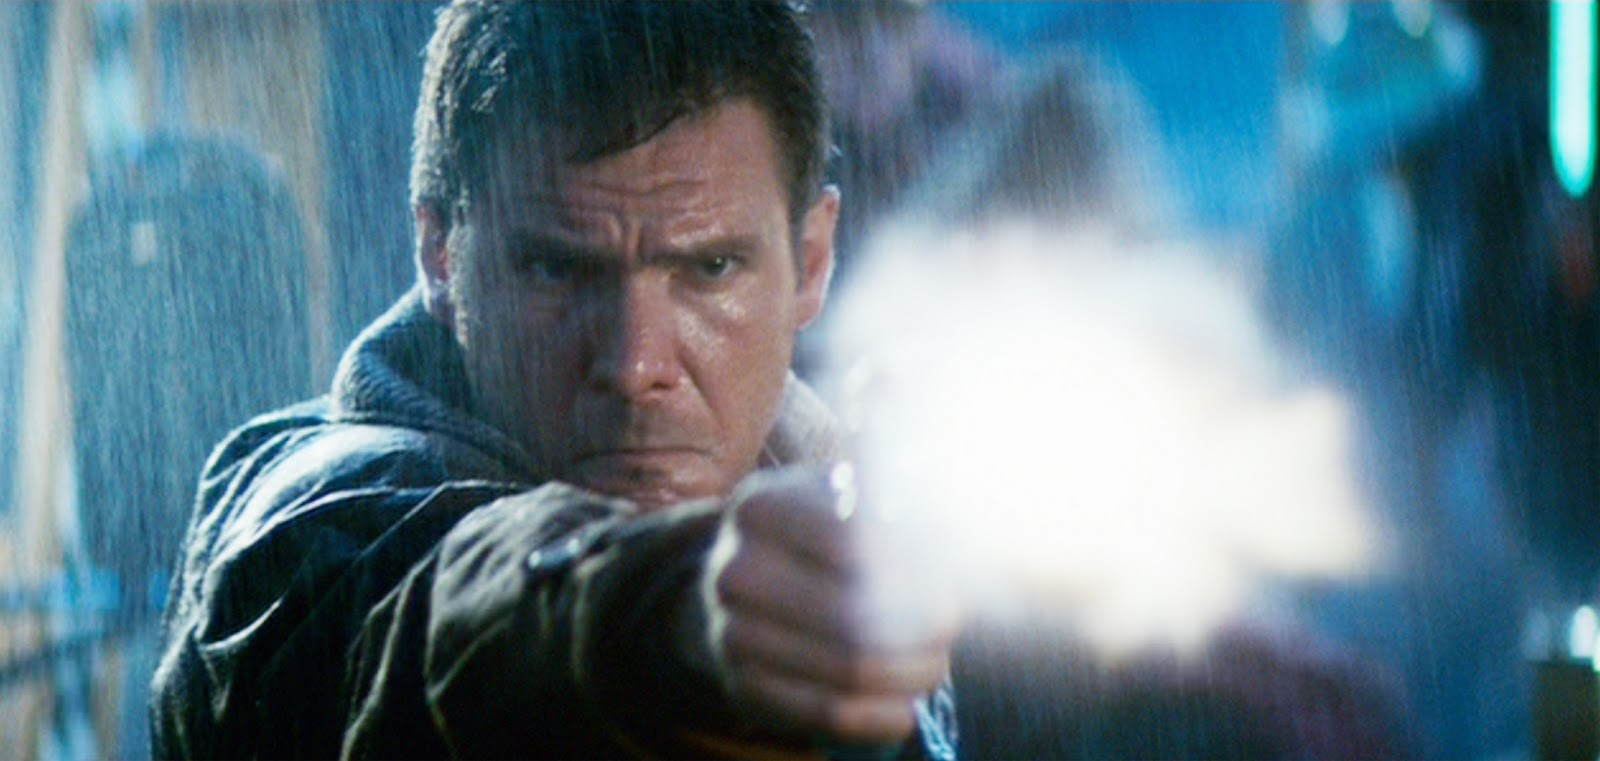 blade runner deckard character analysis A quick look at the throughline analysis of blade runner: blade runner: 2049 answers this changed main character resolve returning to save deckard reflects.